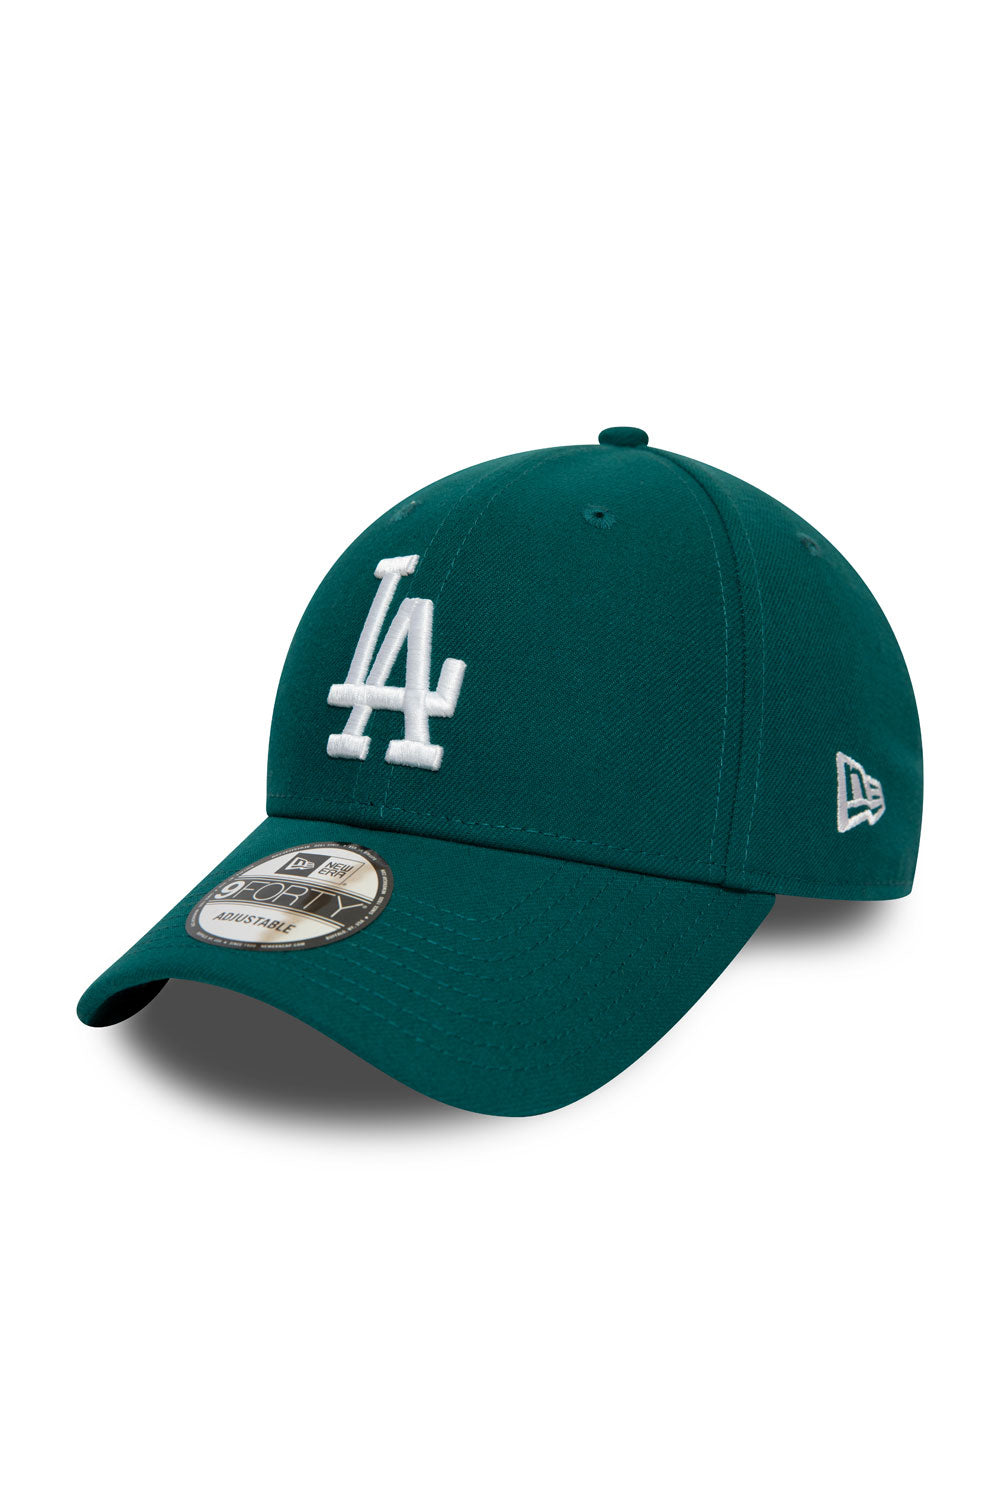 LOS ANGELES DODGERS ESSENTIAL GREEN 9FORTY CAP